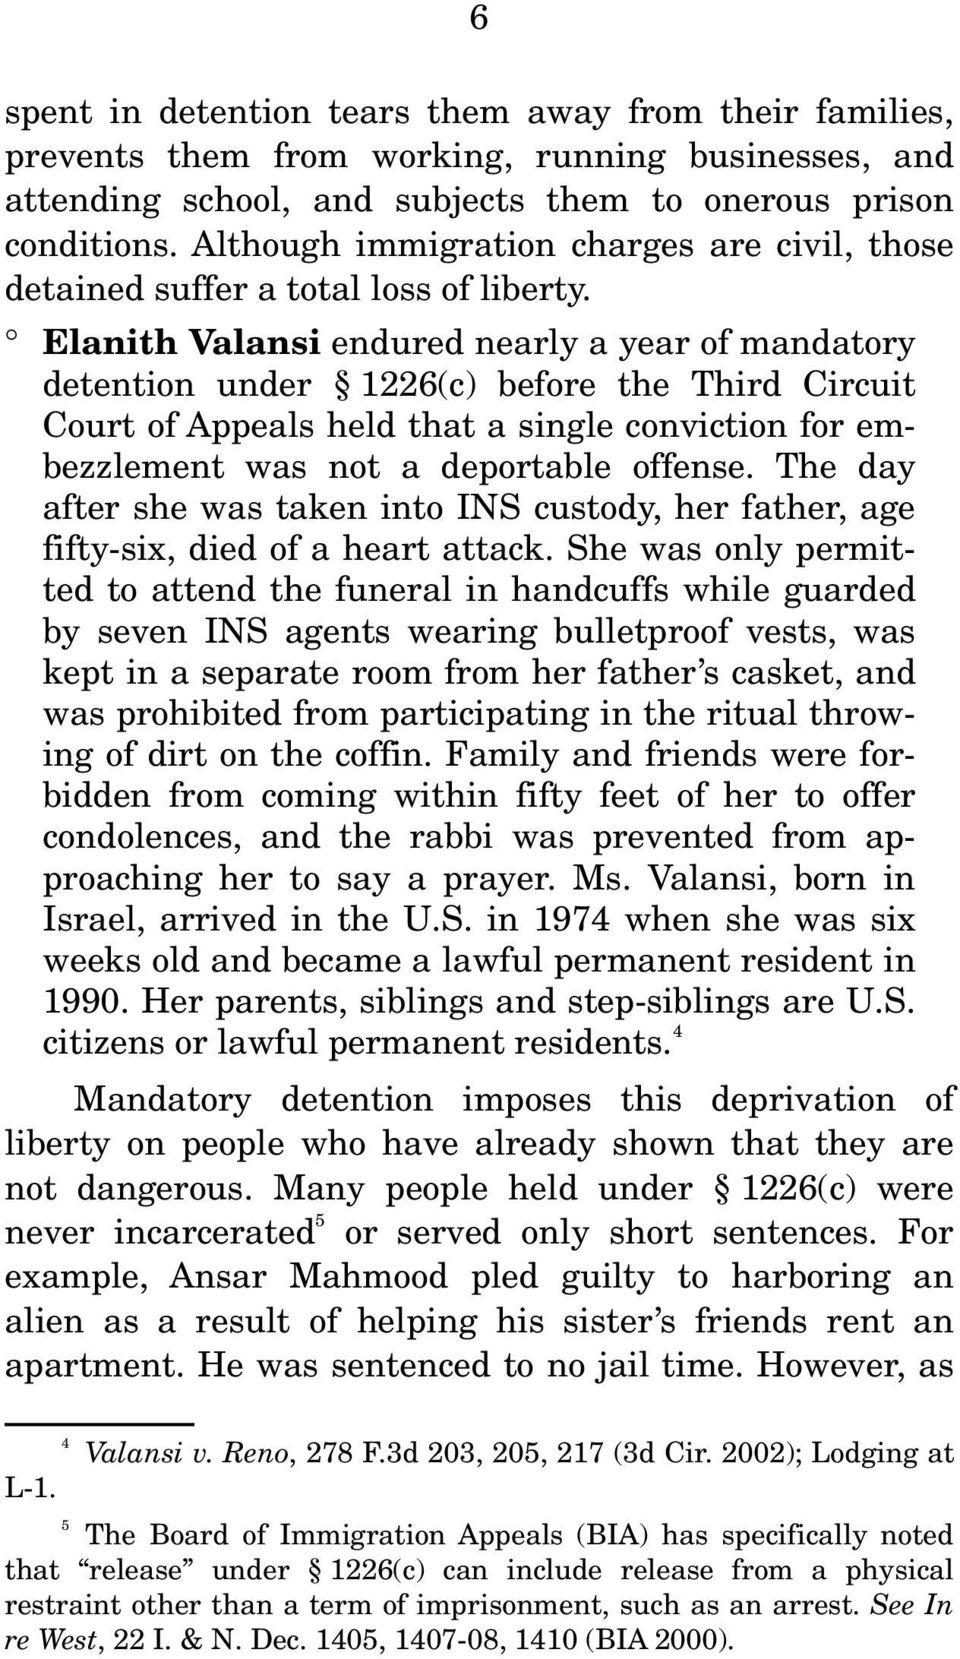 Elanith Valansi endured nearly a year of mandatory detention under 1226(c) before the Third Circuit Court of Appeals held that a single conviction for embezzlement was not a deportable offense.